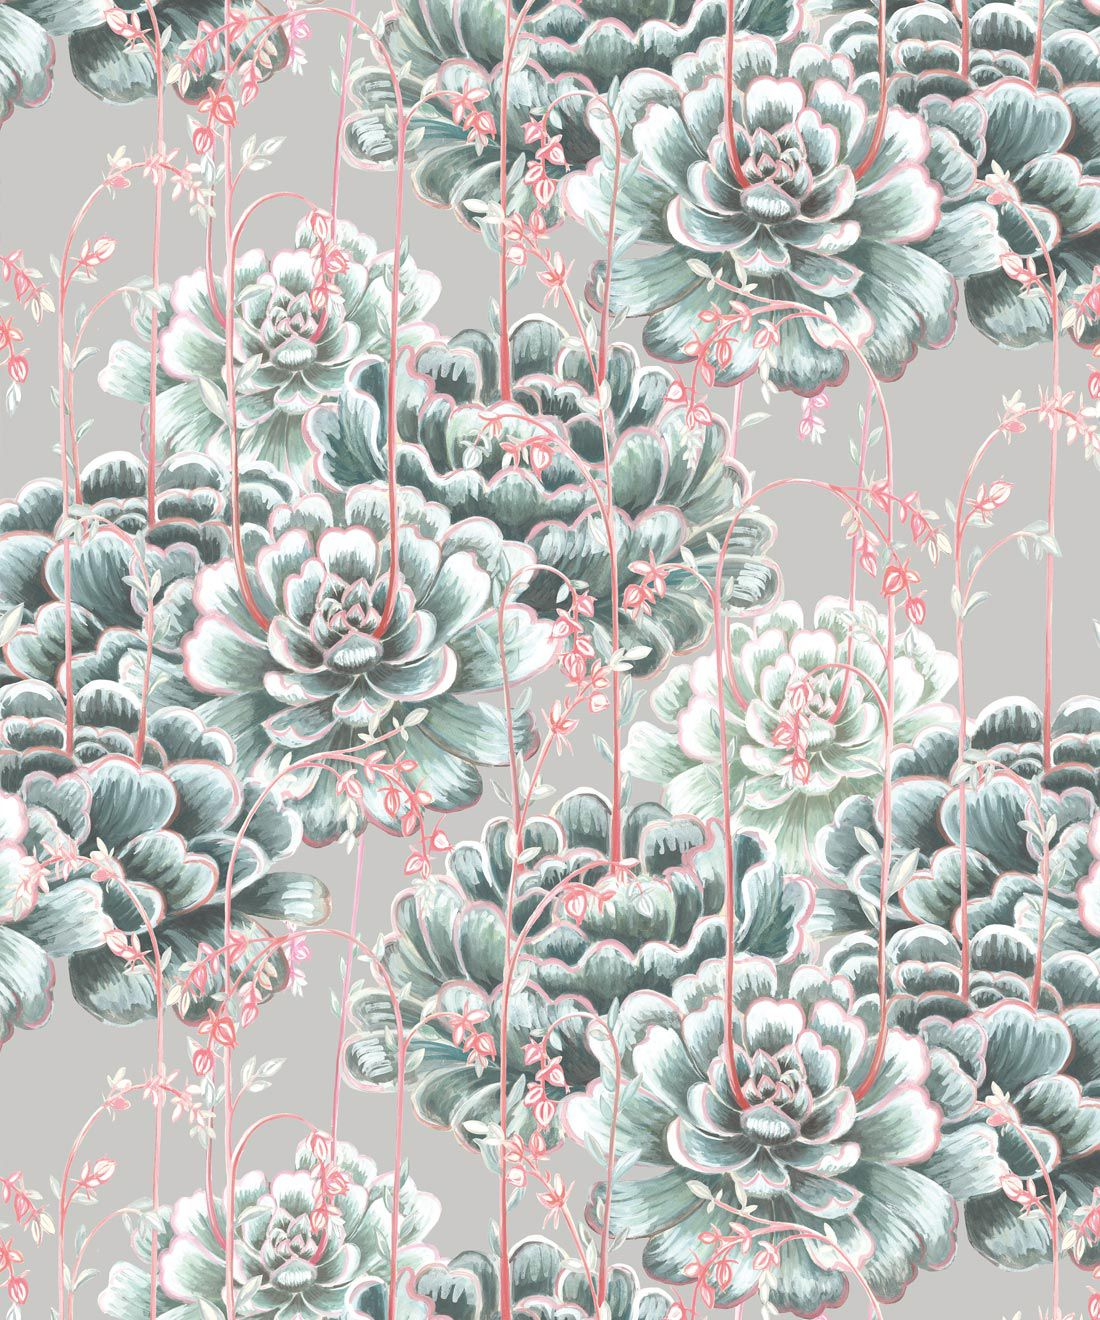 Succulents Wallpaper (Two Rolls)